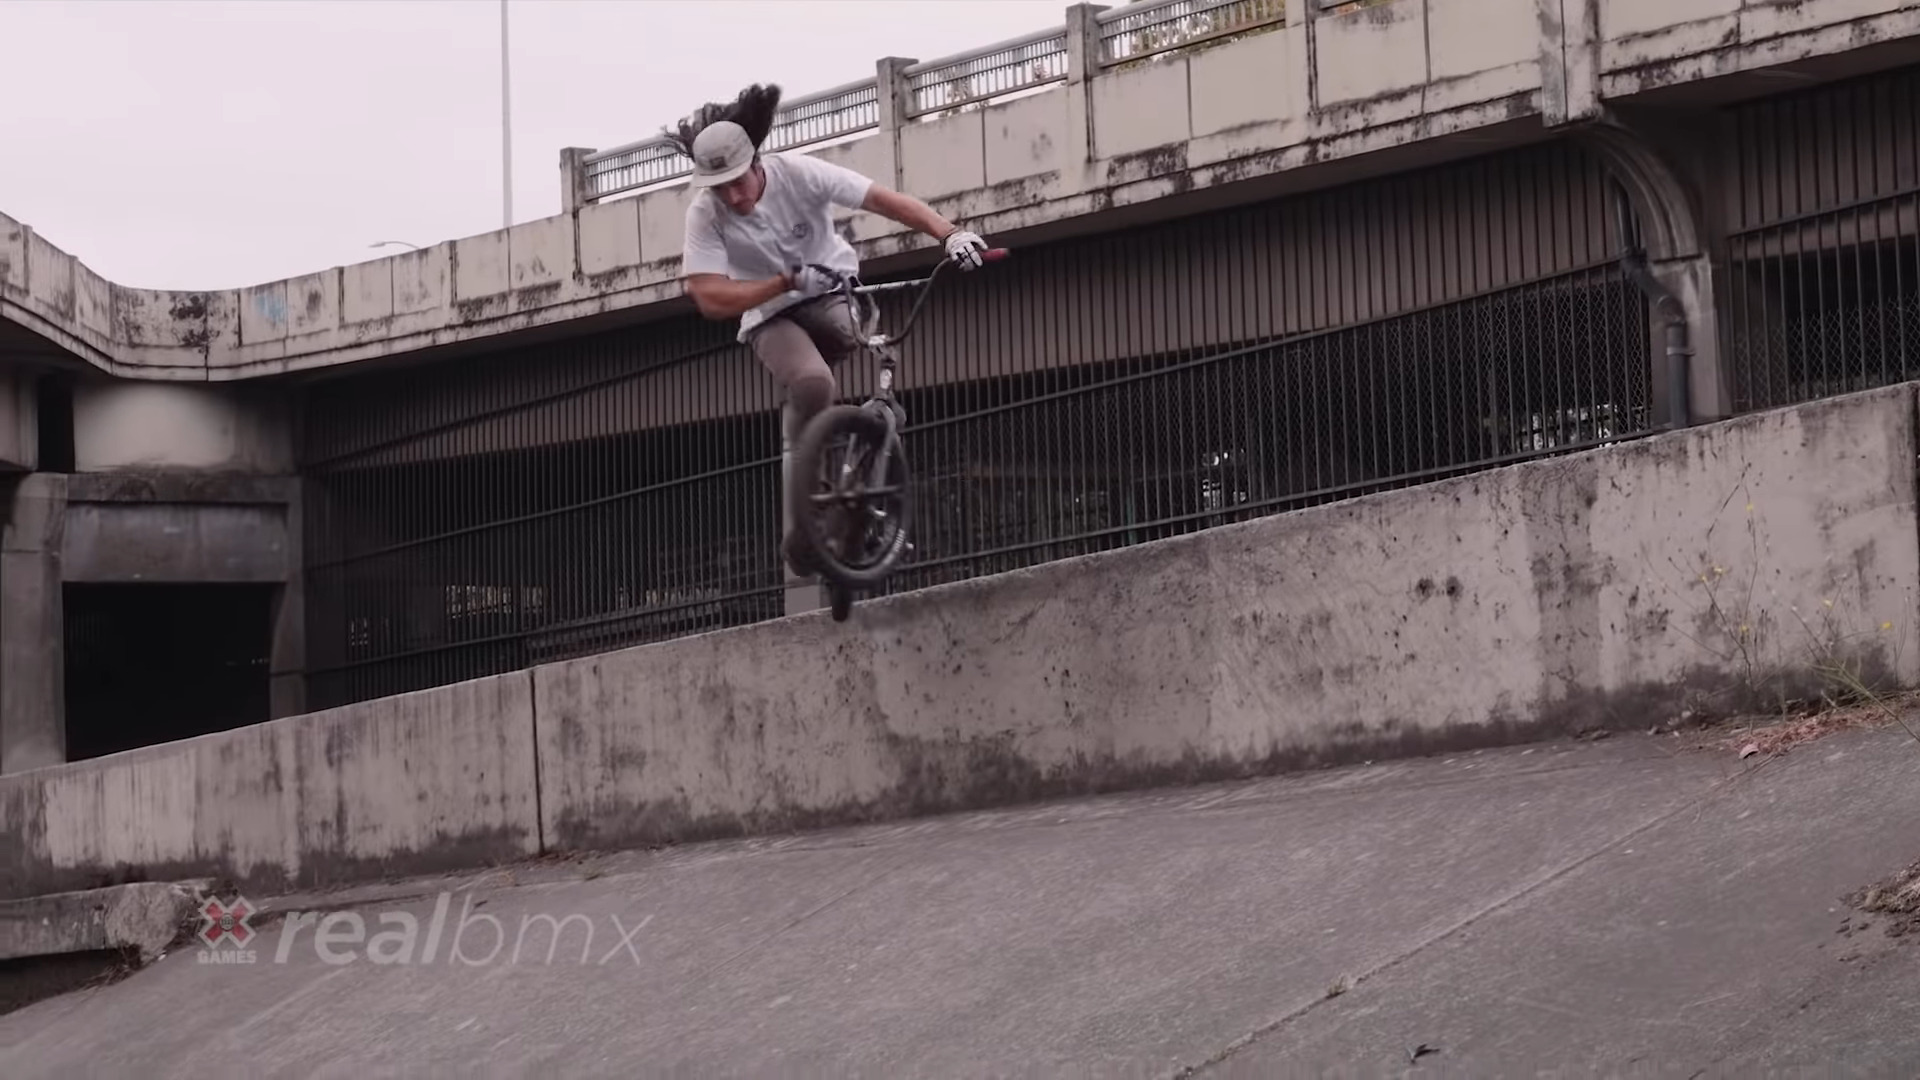 real bmx 2020 julian molina